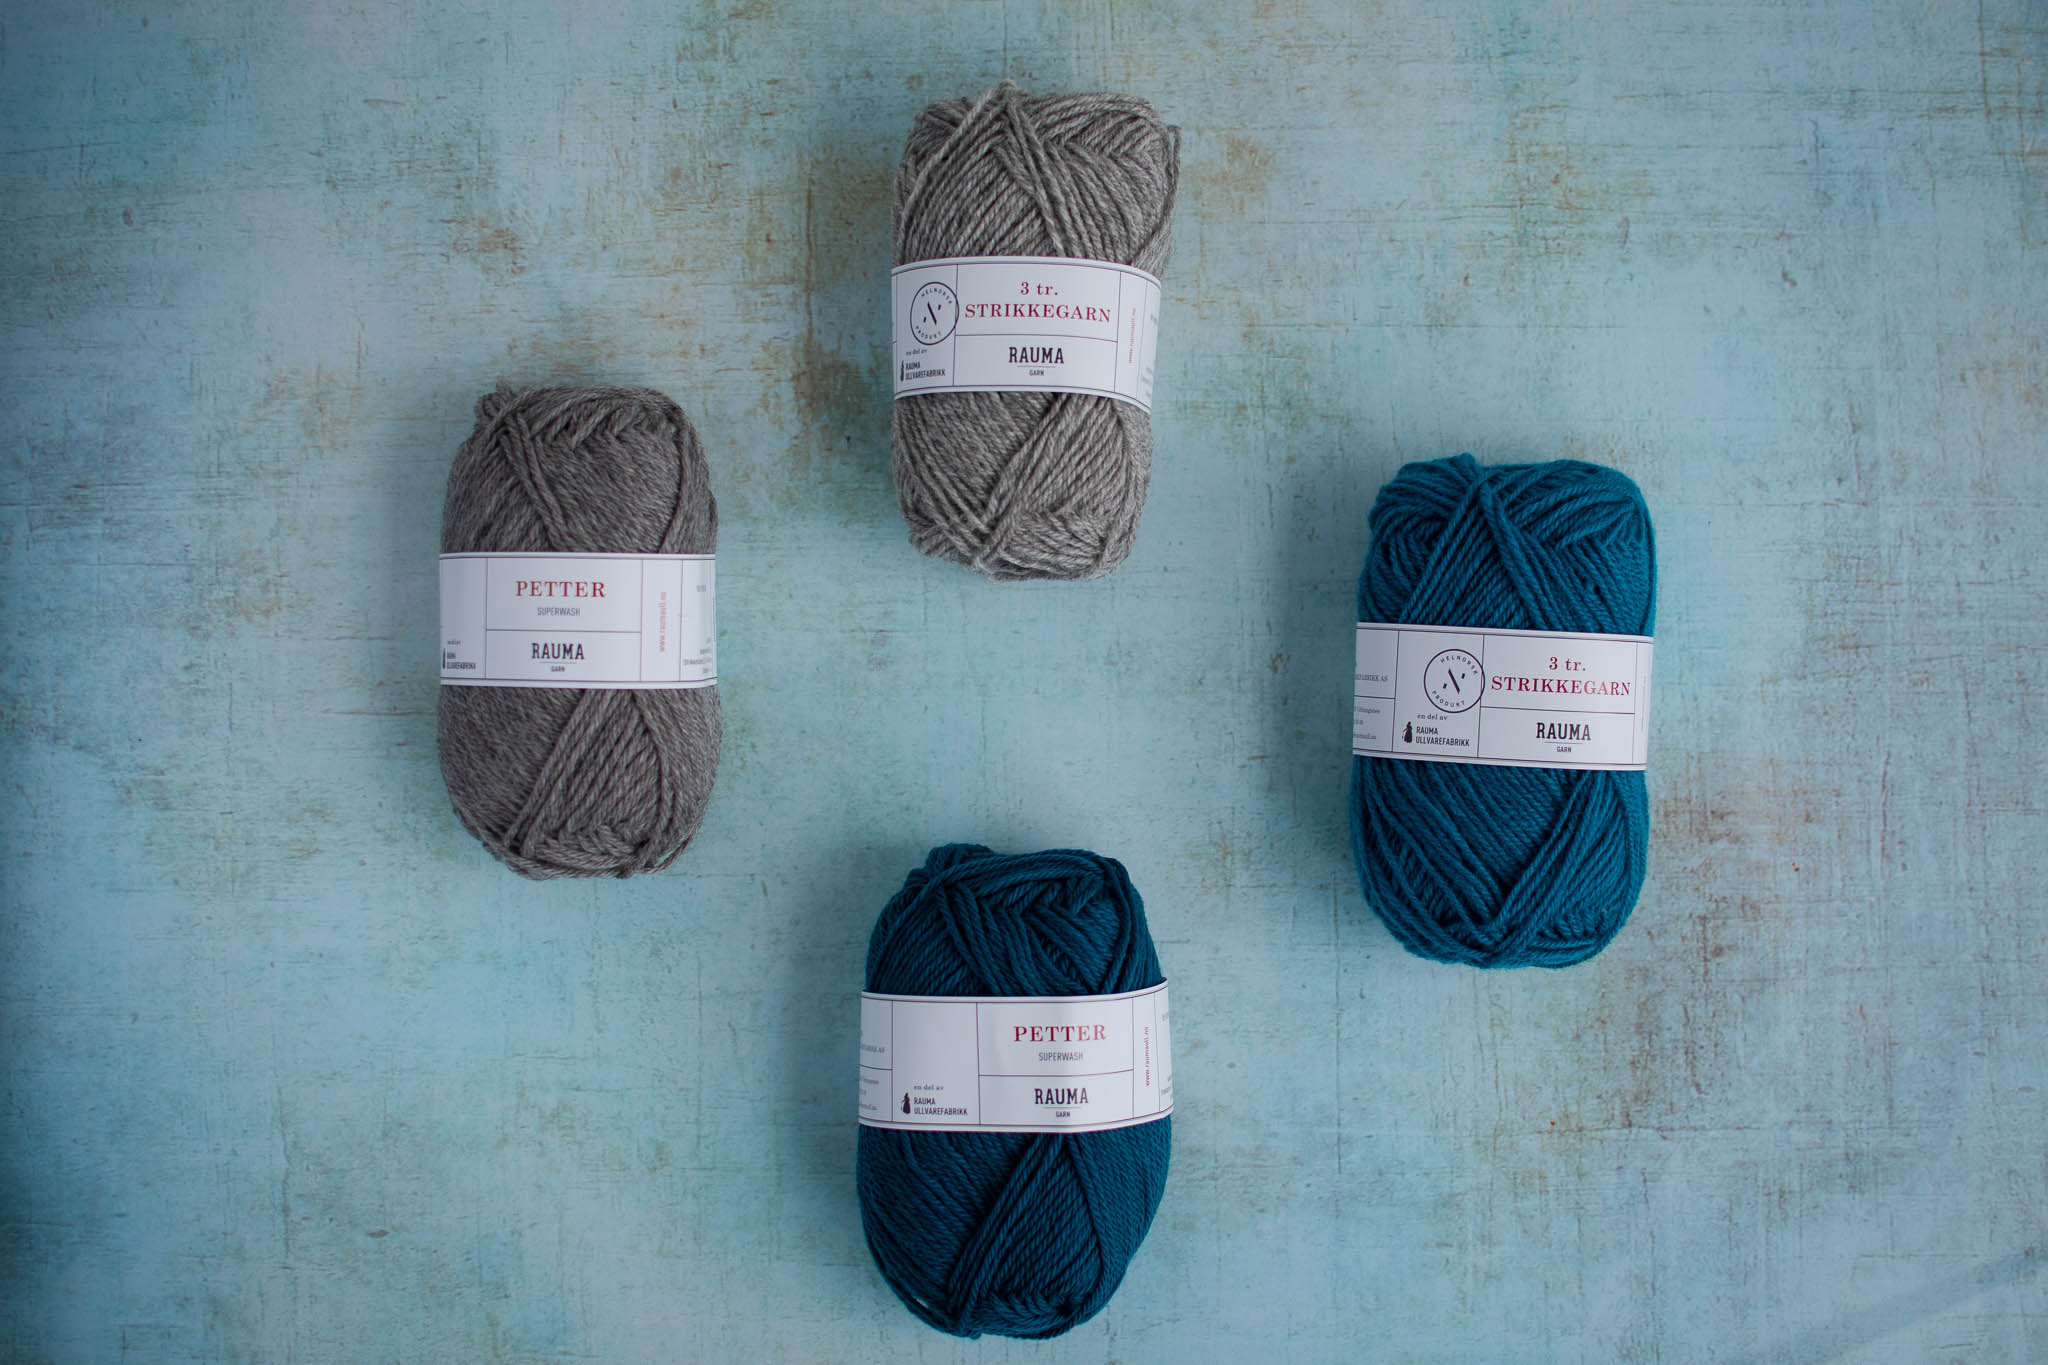 Four balls of yarn arranged on a flat surface, two are grey and two are teal but each of one is slightly darker than the other.